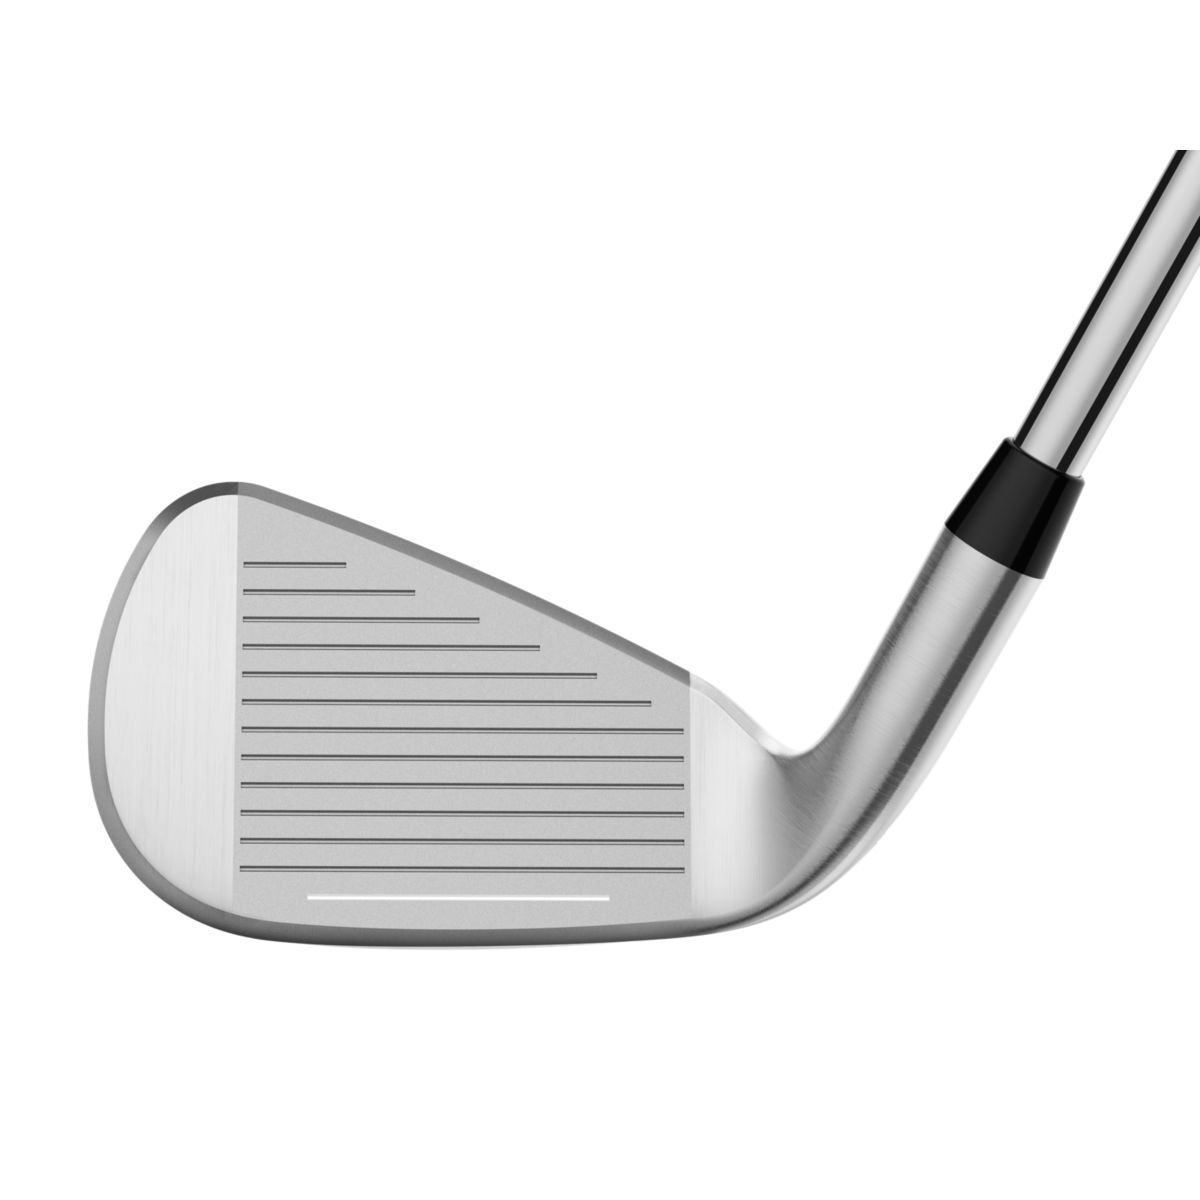 Cobra Men s Fly Z Black 7 1 Combo Iron Set, Graphite Hybrids with Steel Irons, Regular, 3-4H, 5-GW, Right Hand